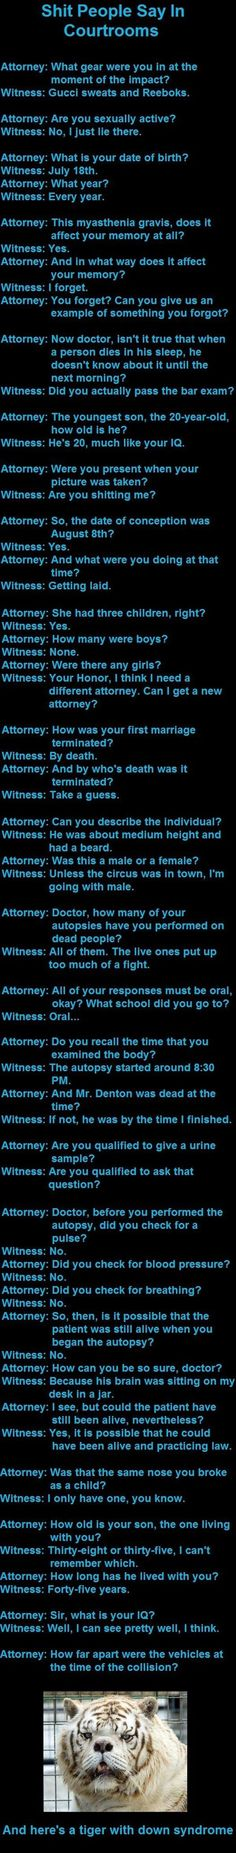 funny things said in court